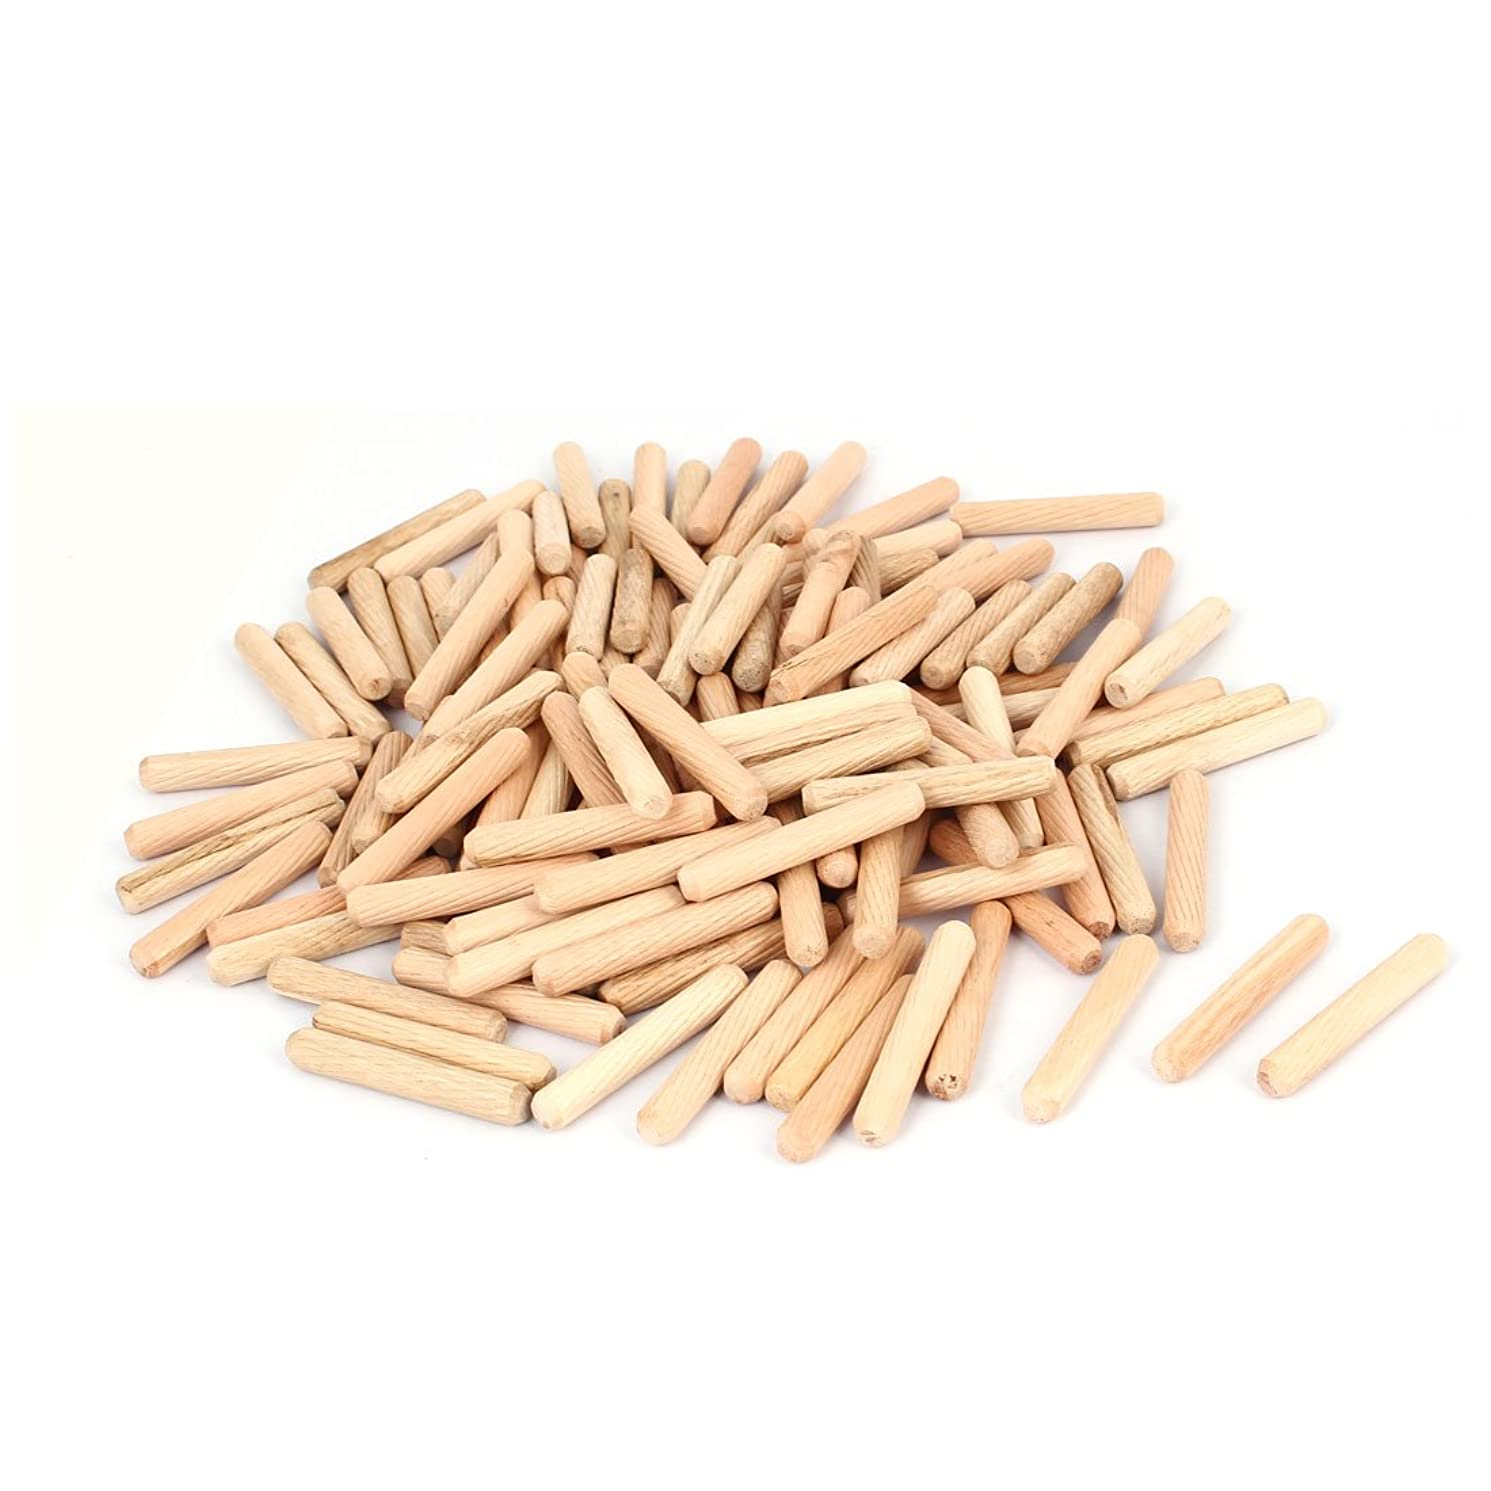 uxcell Cabinet Drawer 8mmx50mm Round Fluted Wood Wooden Craft Dowel Pin 100pcs